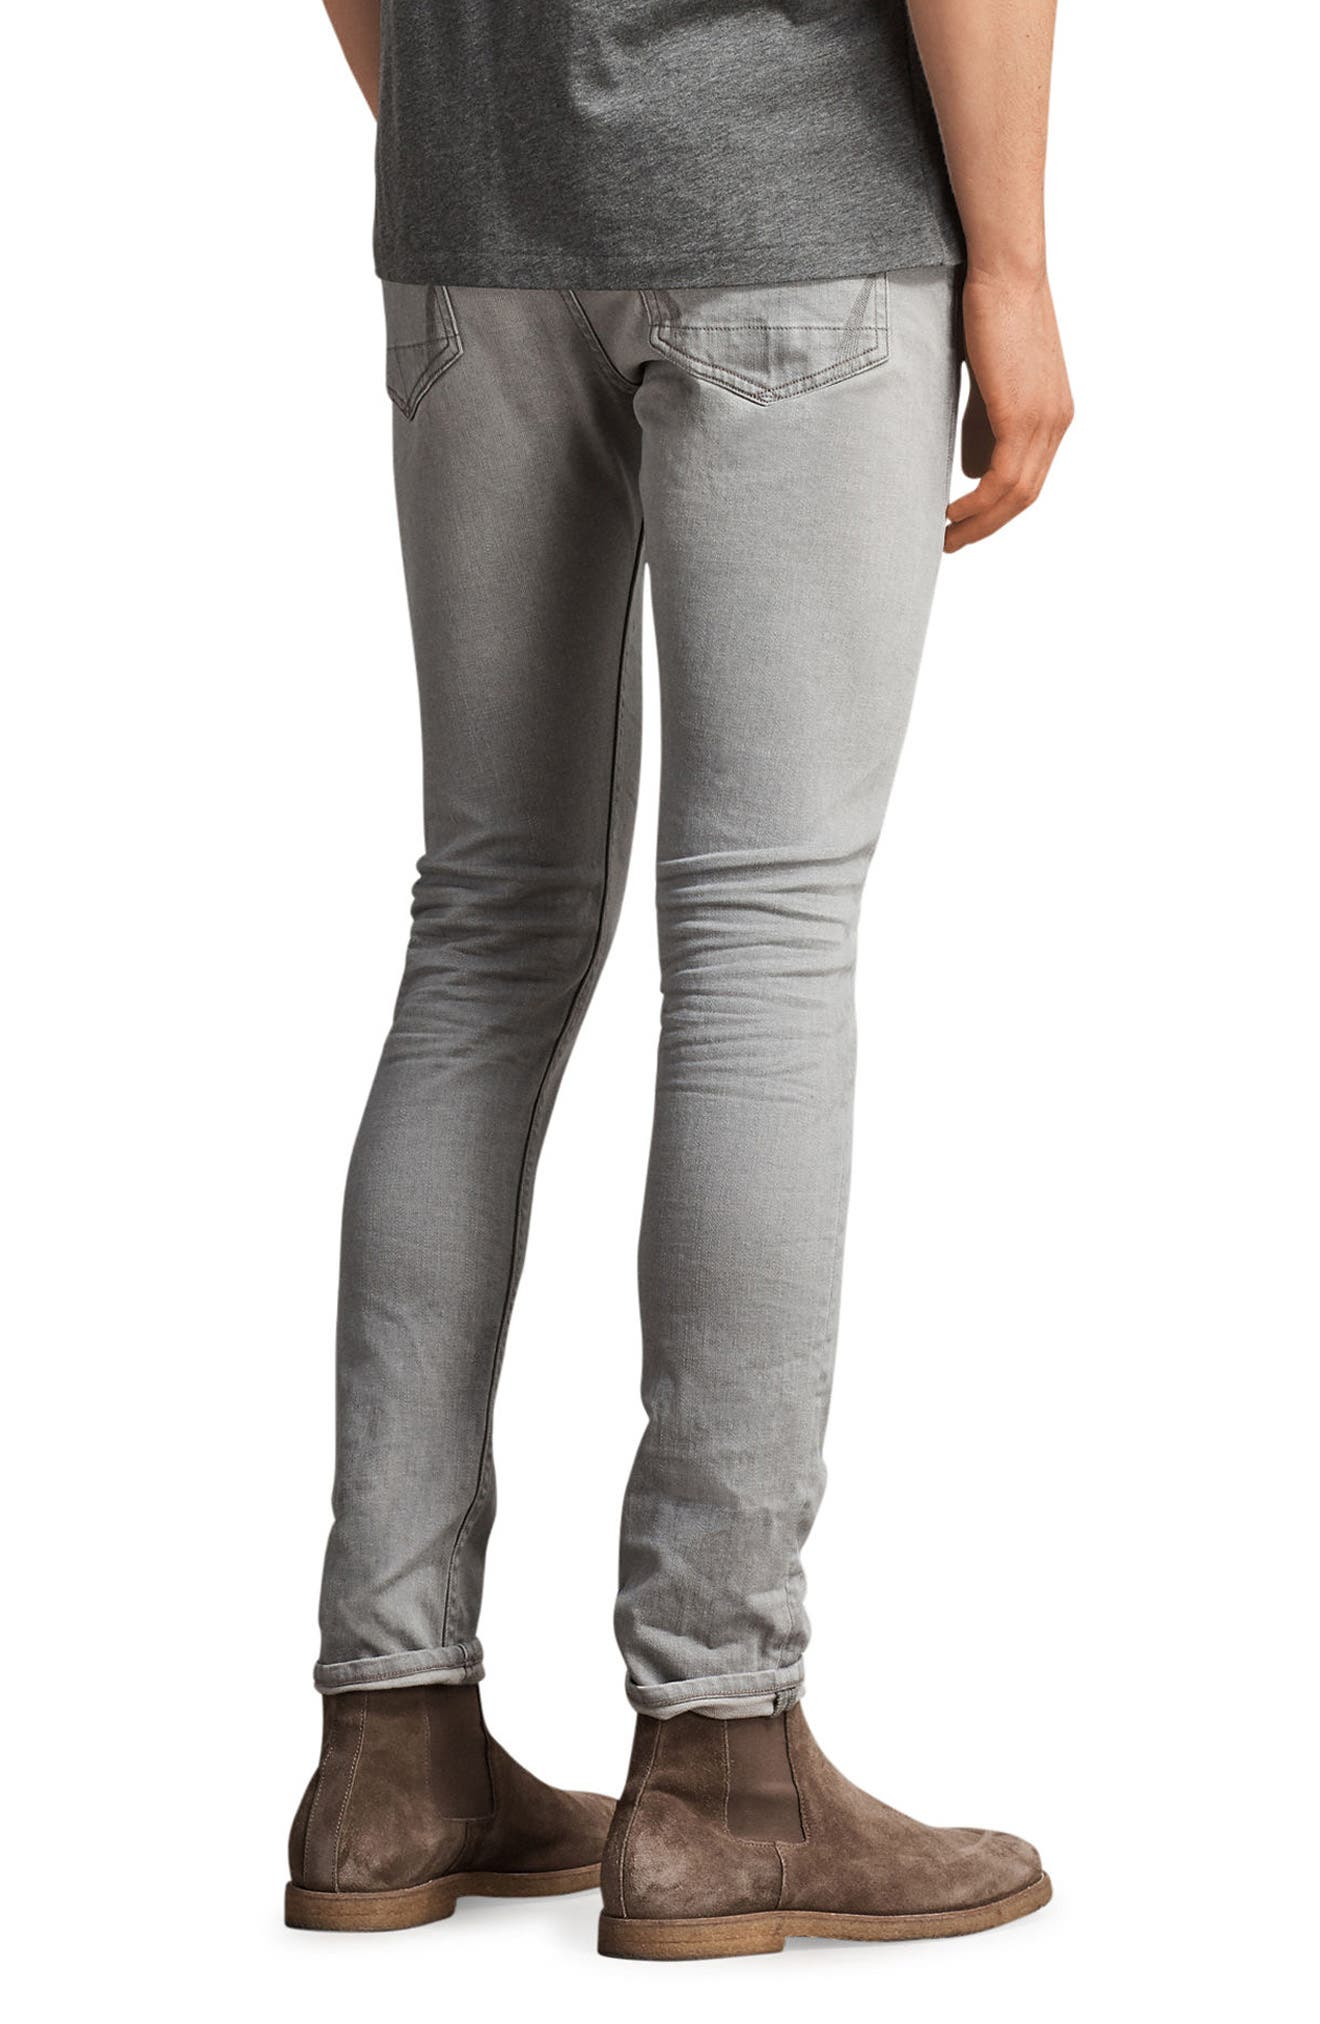 Ghoul Skinny Fit Jeans,                             Alternate thumbnail 2, color,                             033